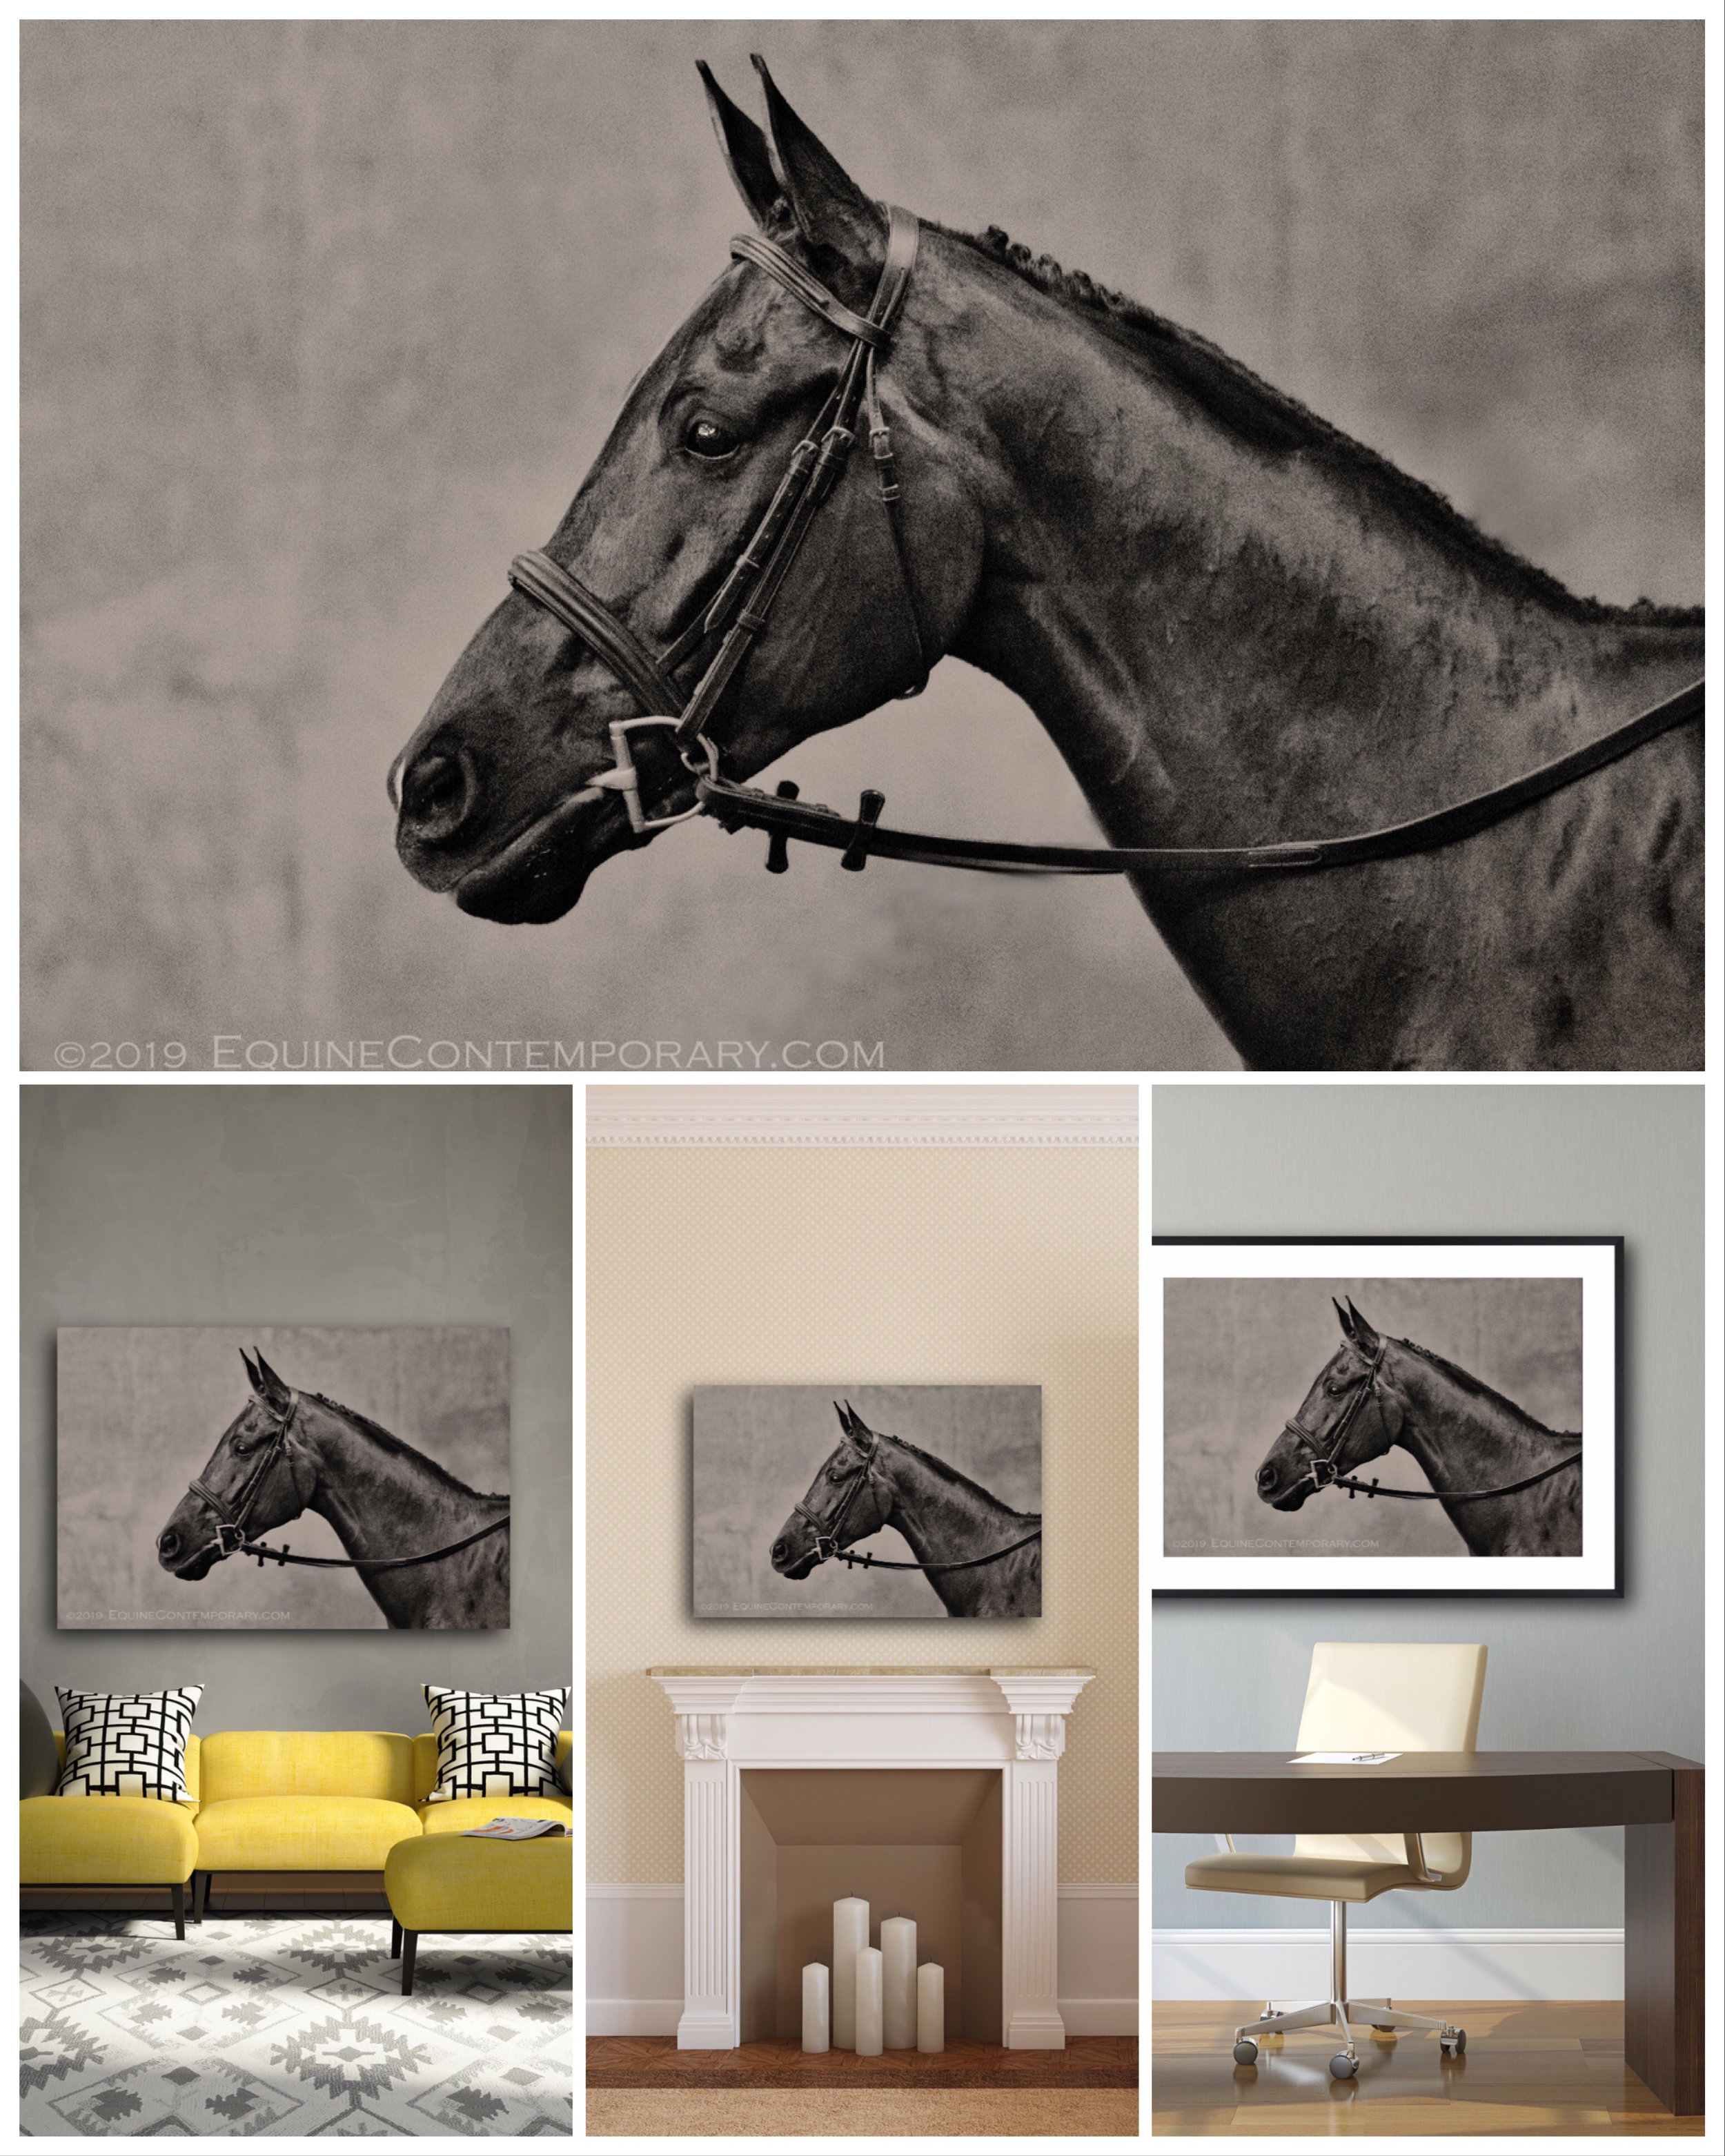 Here are two versions of the image on  dye-sublimated metal,  and an  archival pigment print on watercolor cotton paper,  matted and framed.